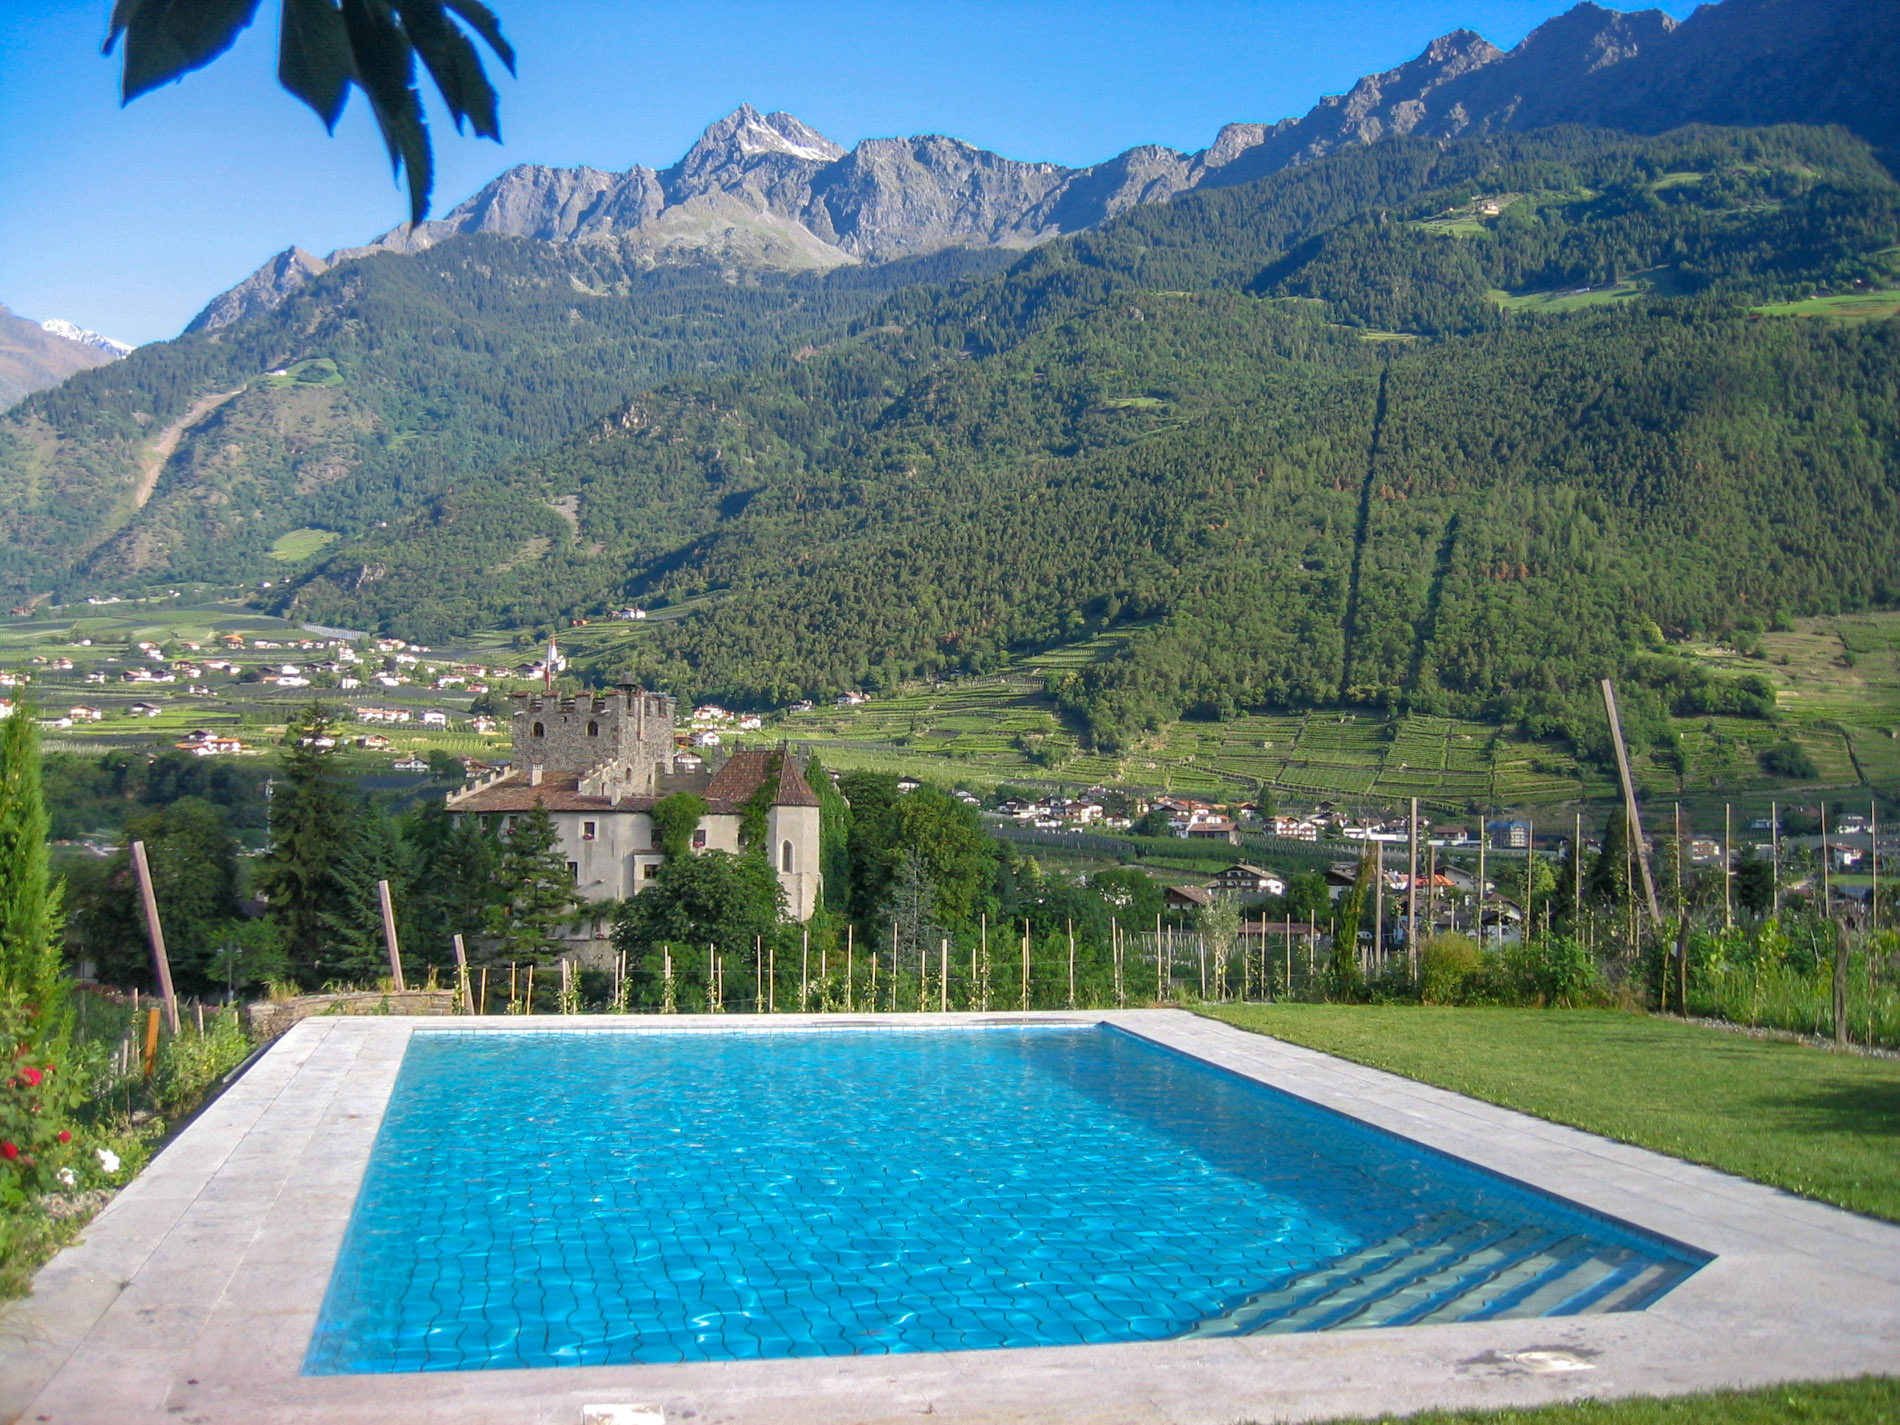 Ferienwohnung Mit Pool Marling Appartements Im Moosbichlerhof In Marling